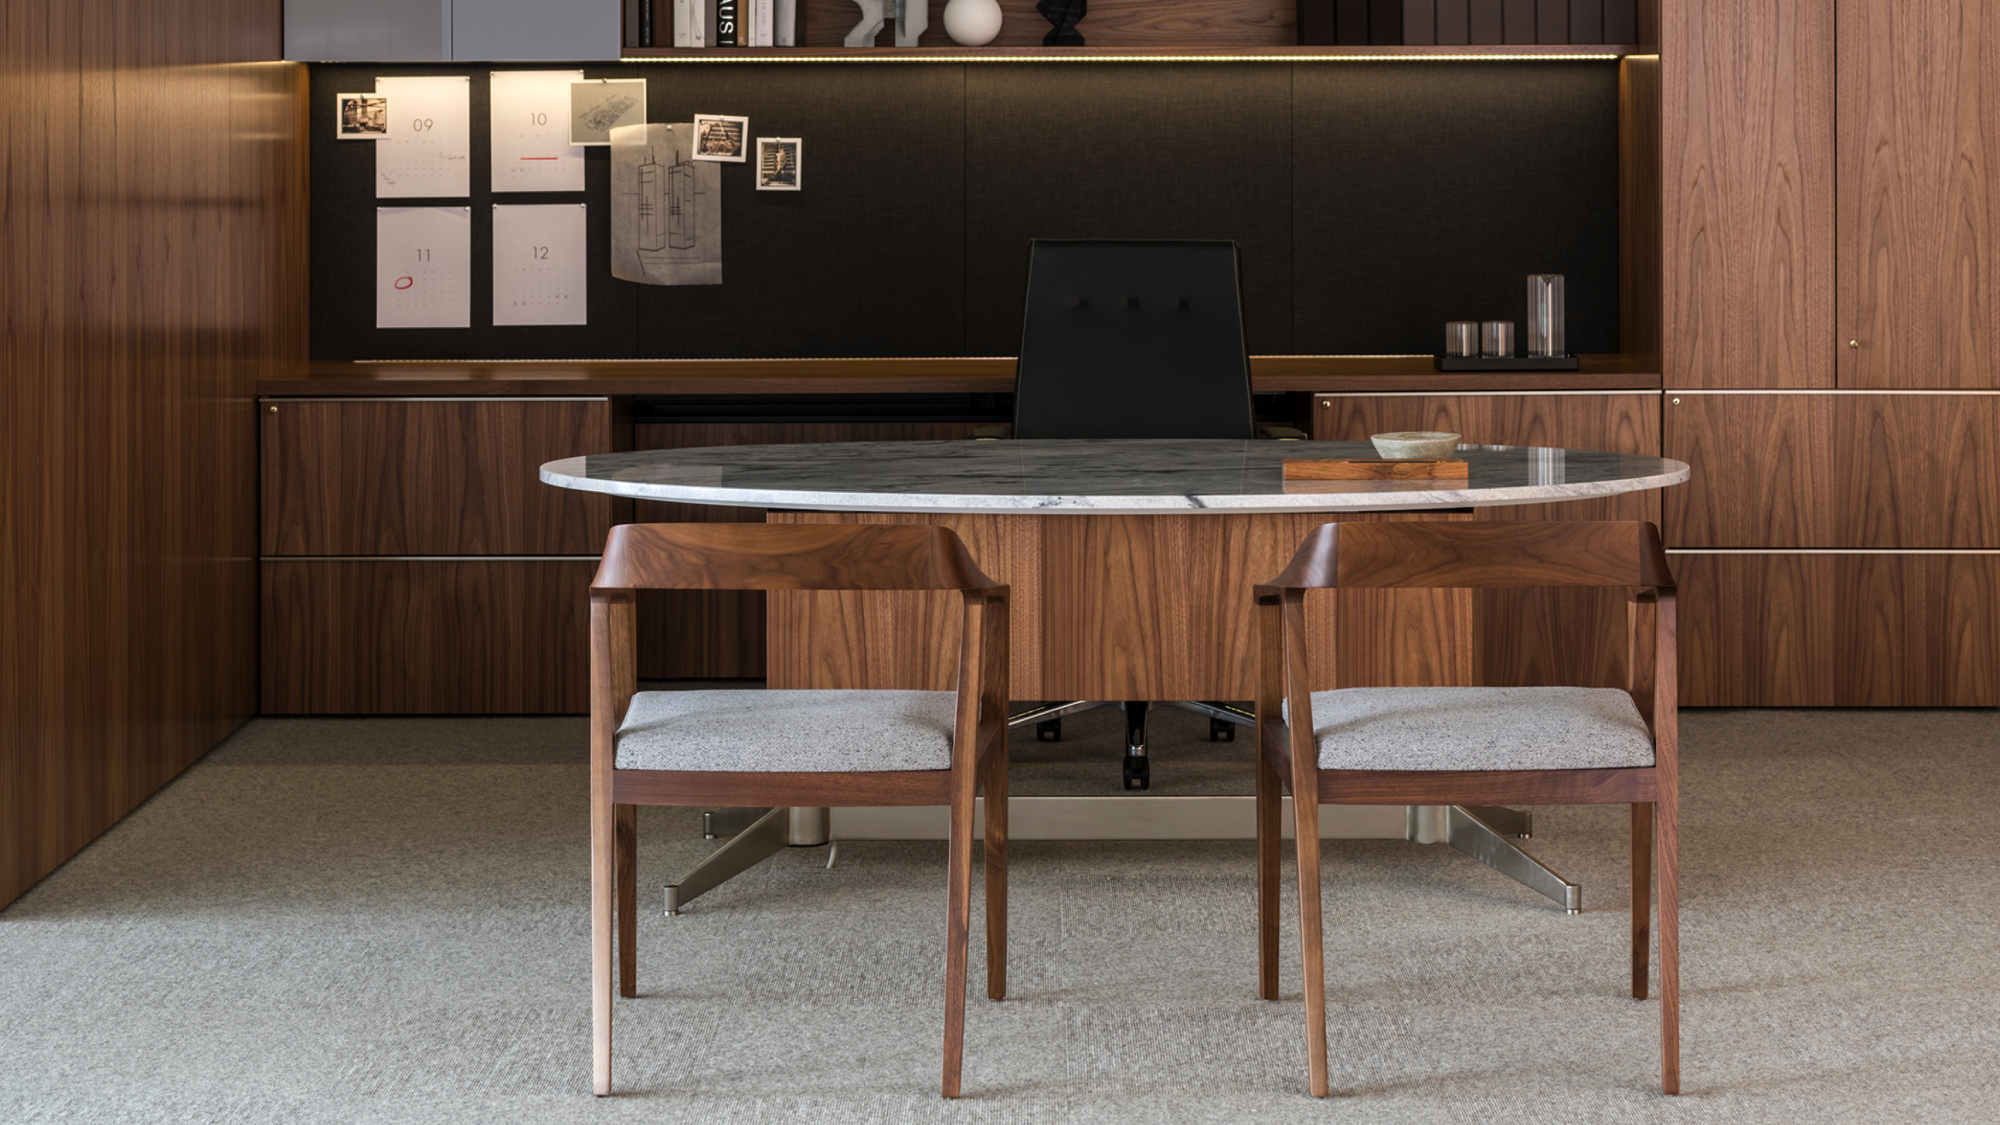 Mp Height Adjustable Executive Table Desk By Geiger Furniture Shown